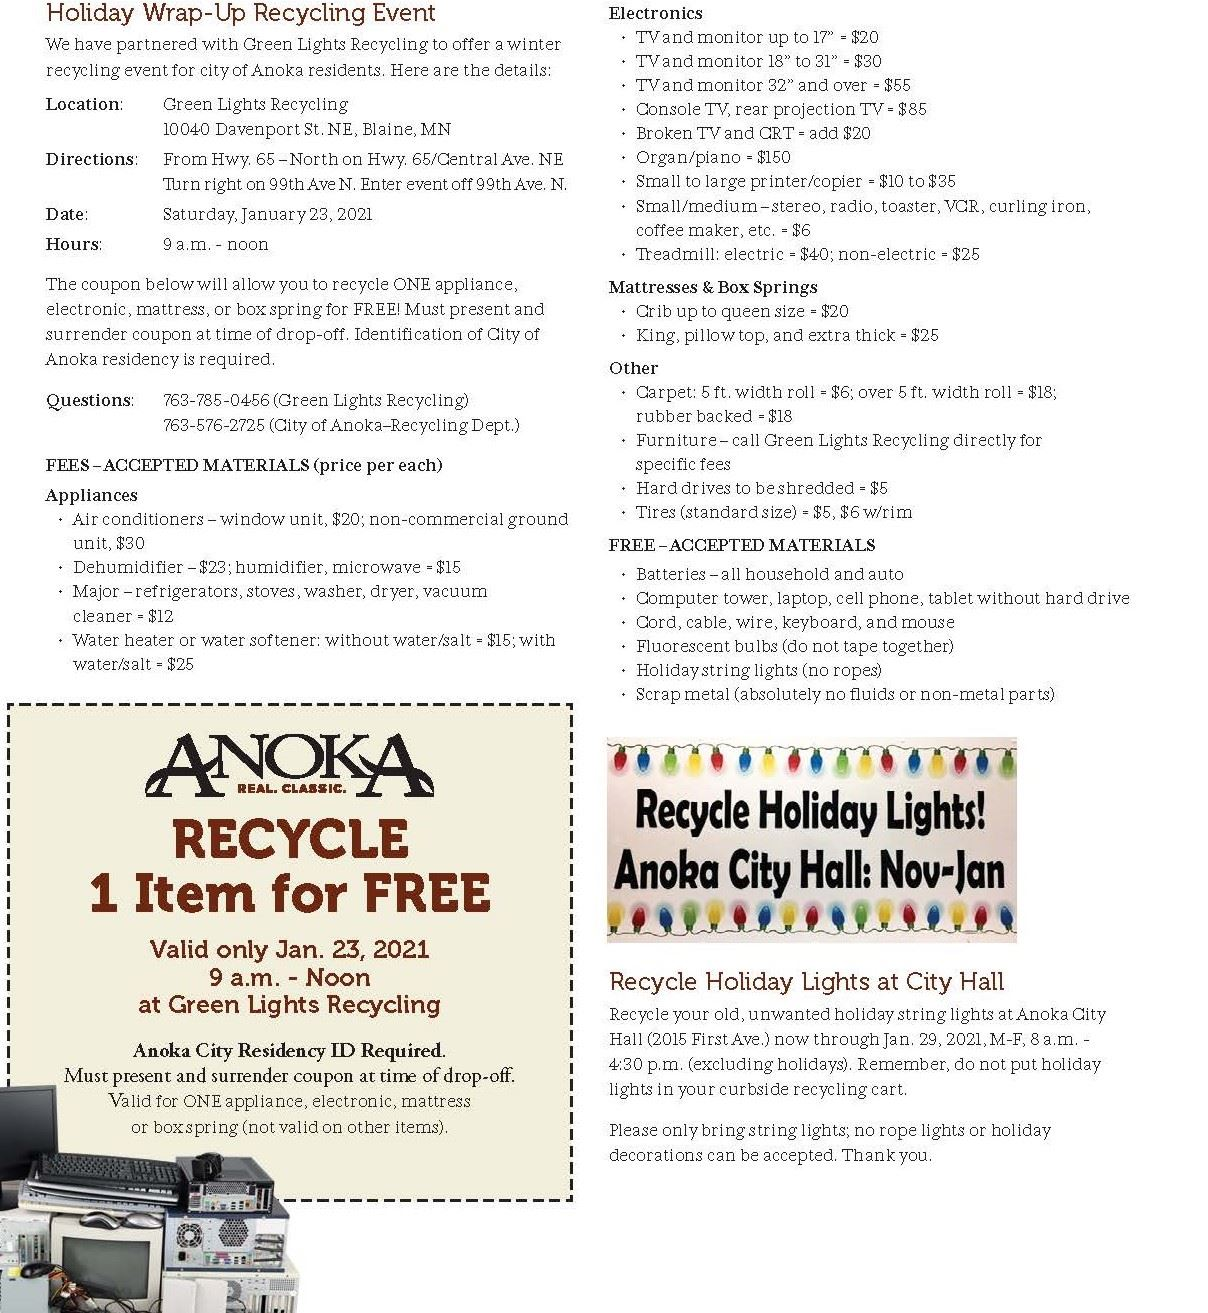 Holiday Wrap Up Recycling Event